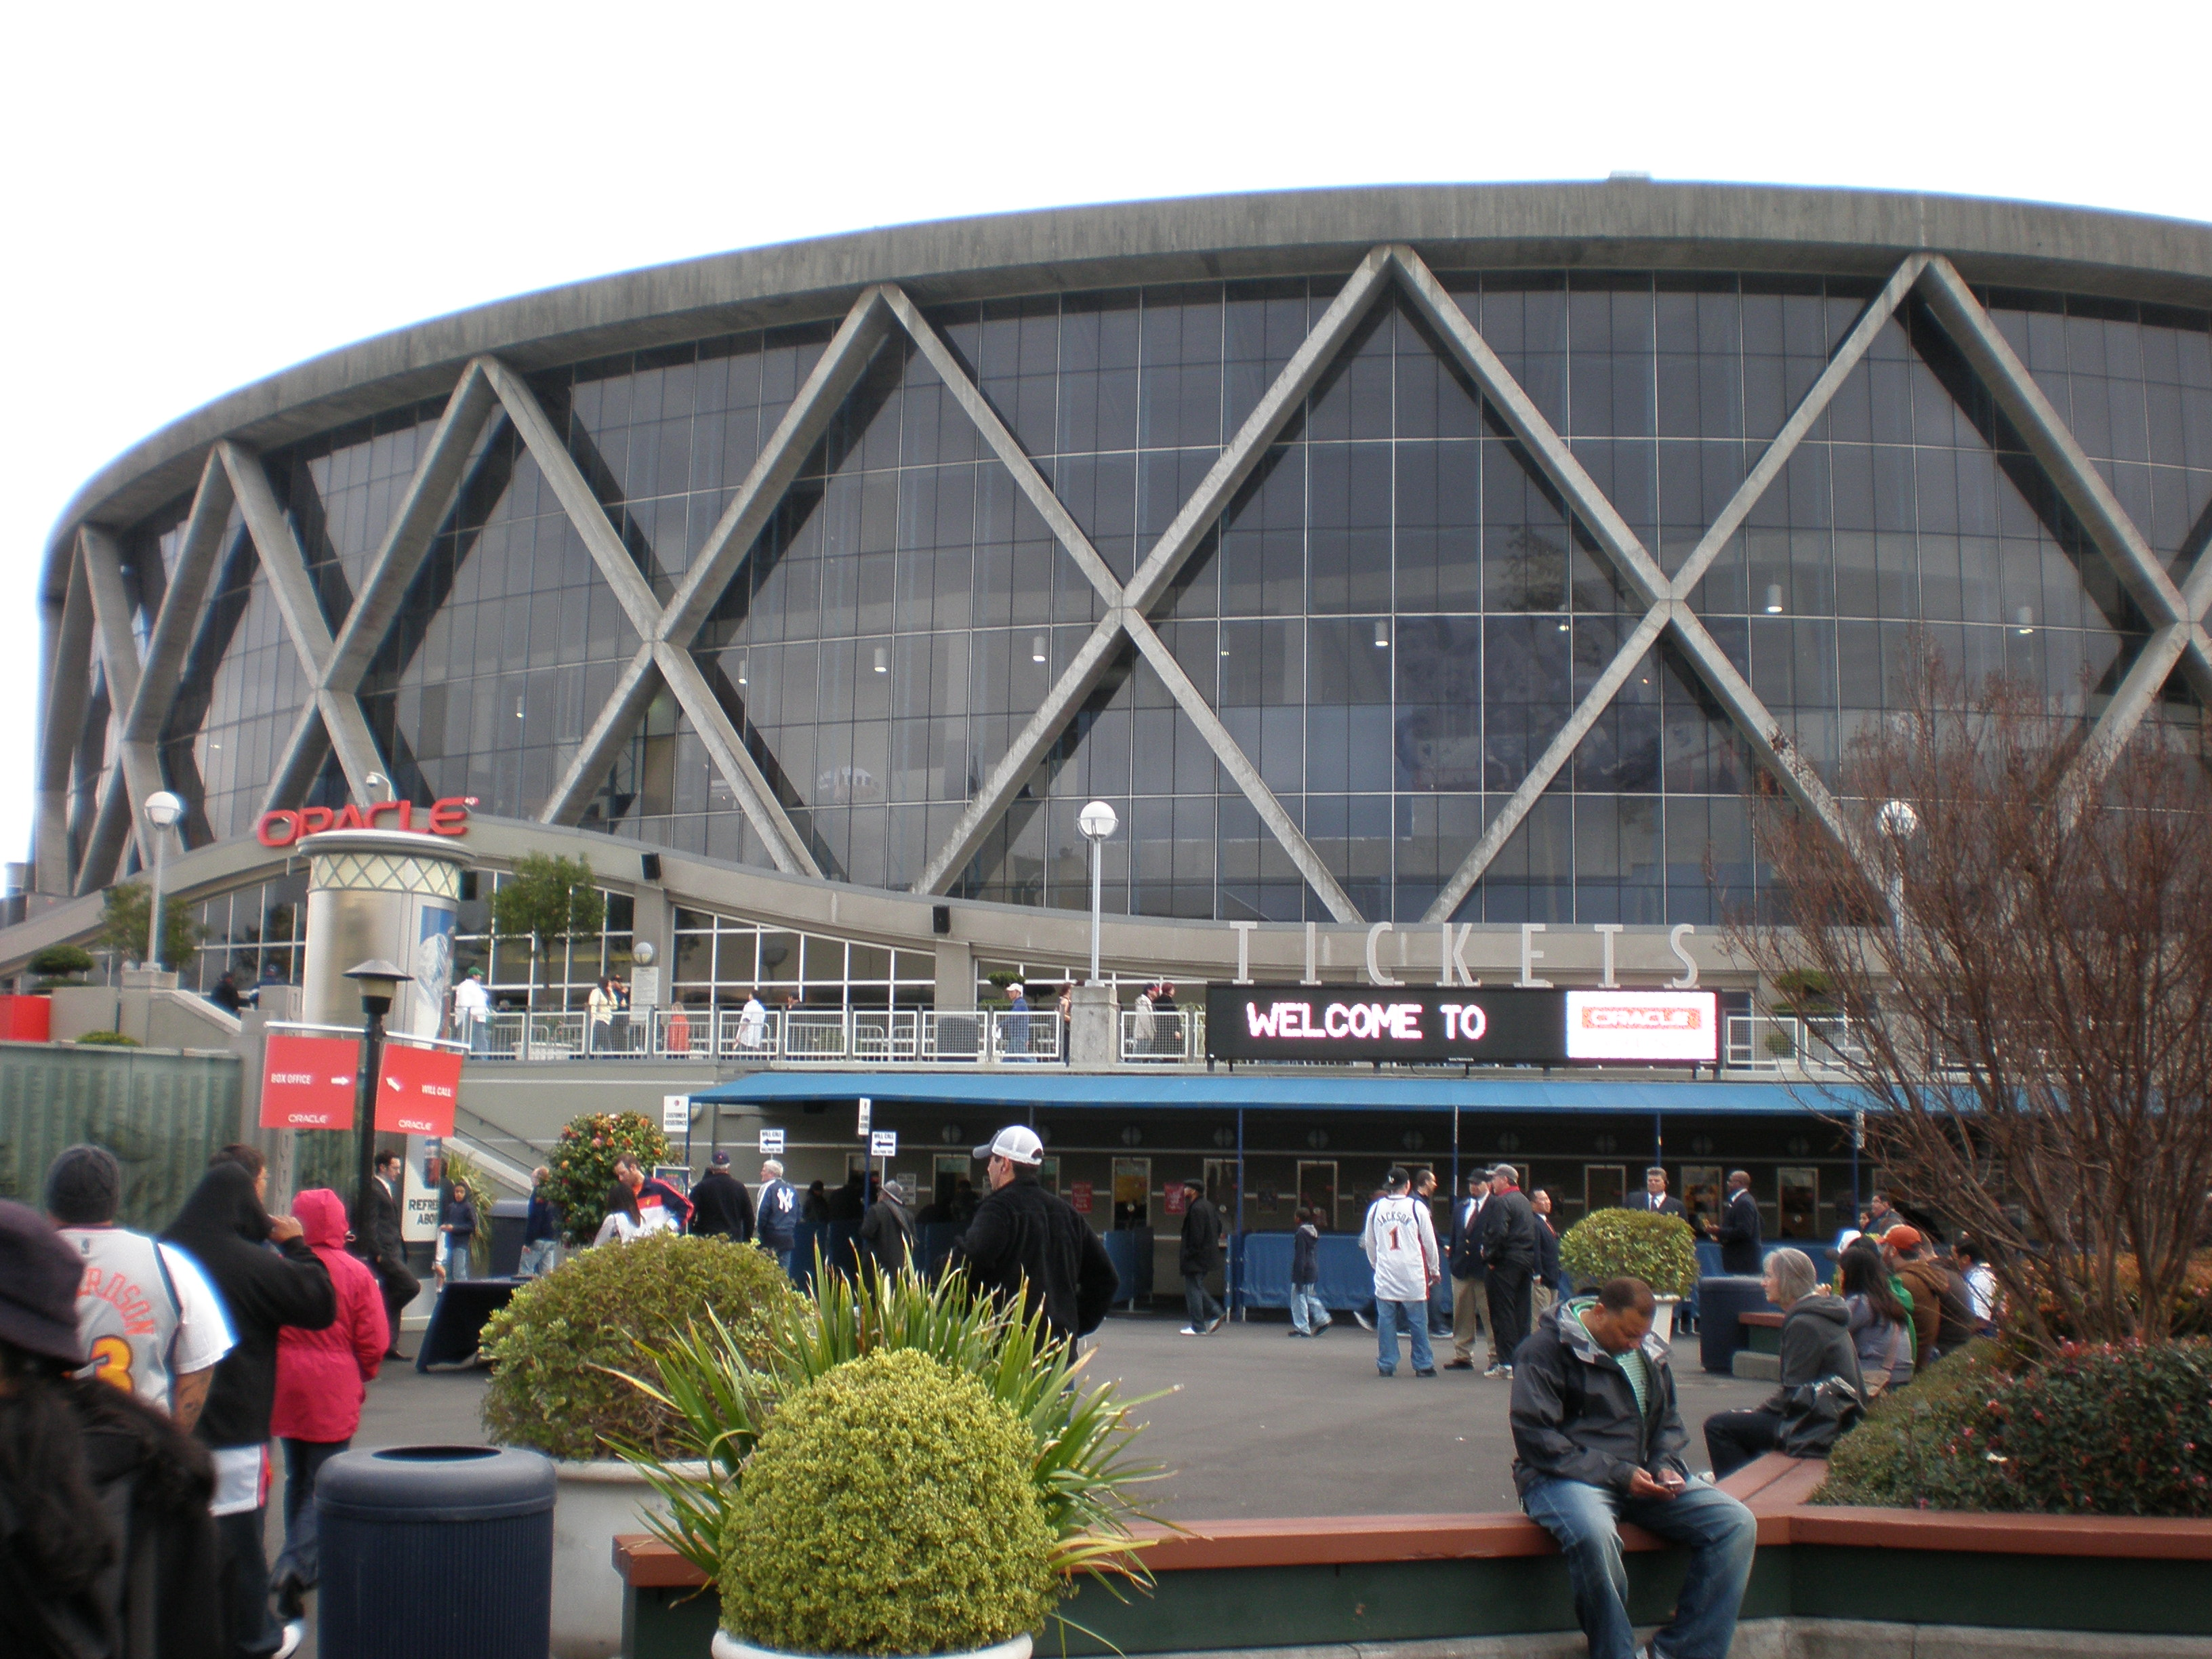 File:Oracle Arena exterior 1.JPG - Wikimedia Commons